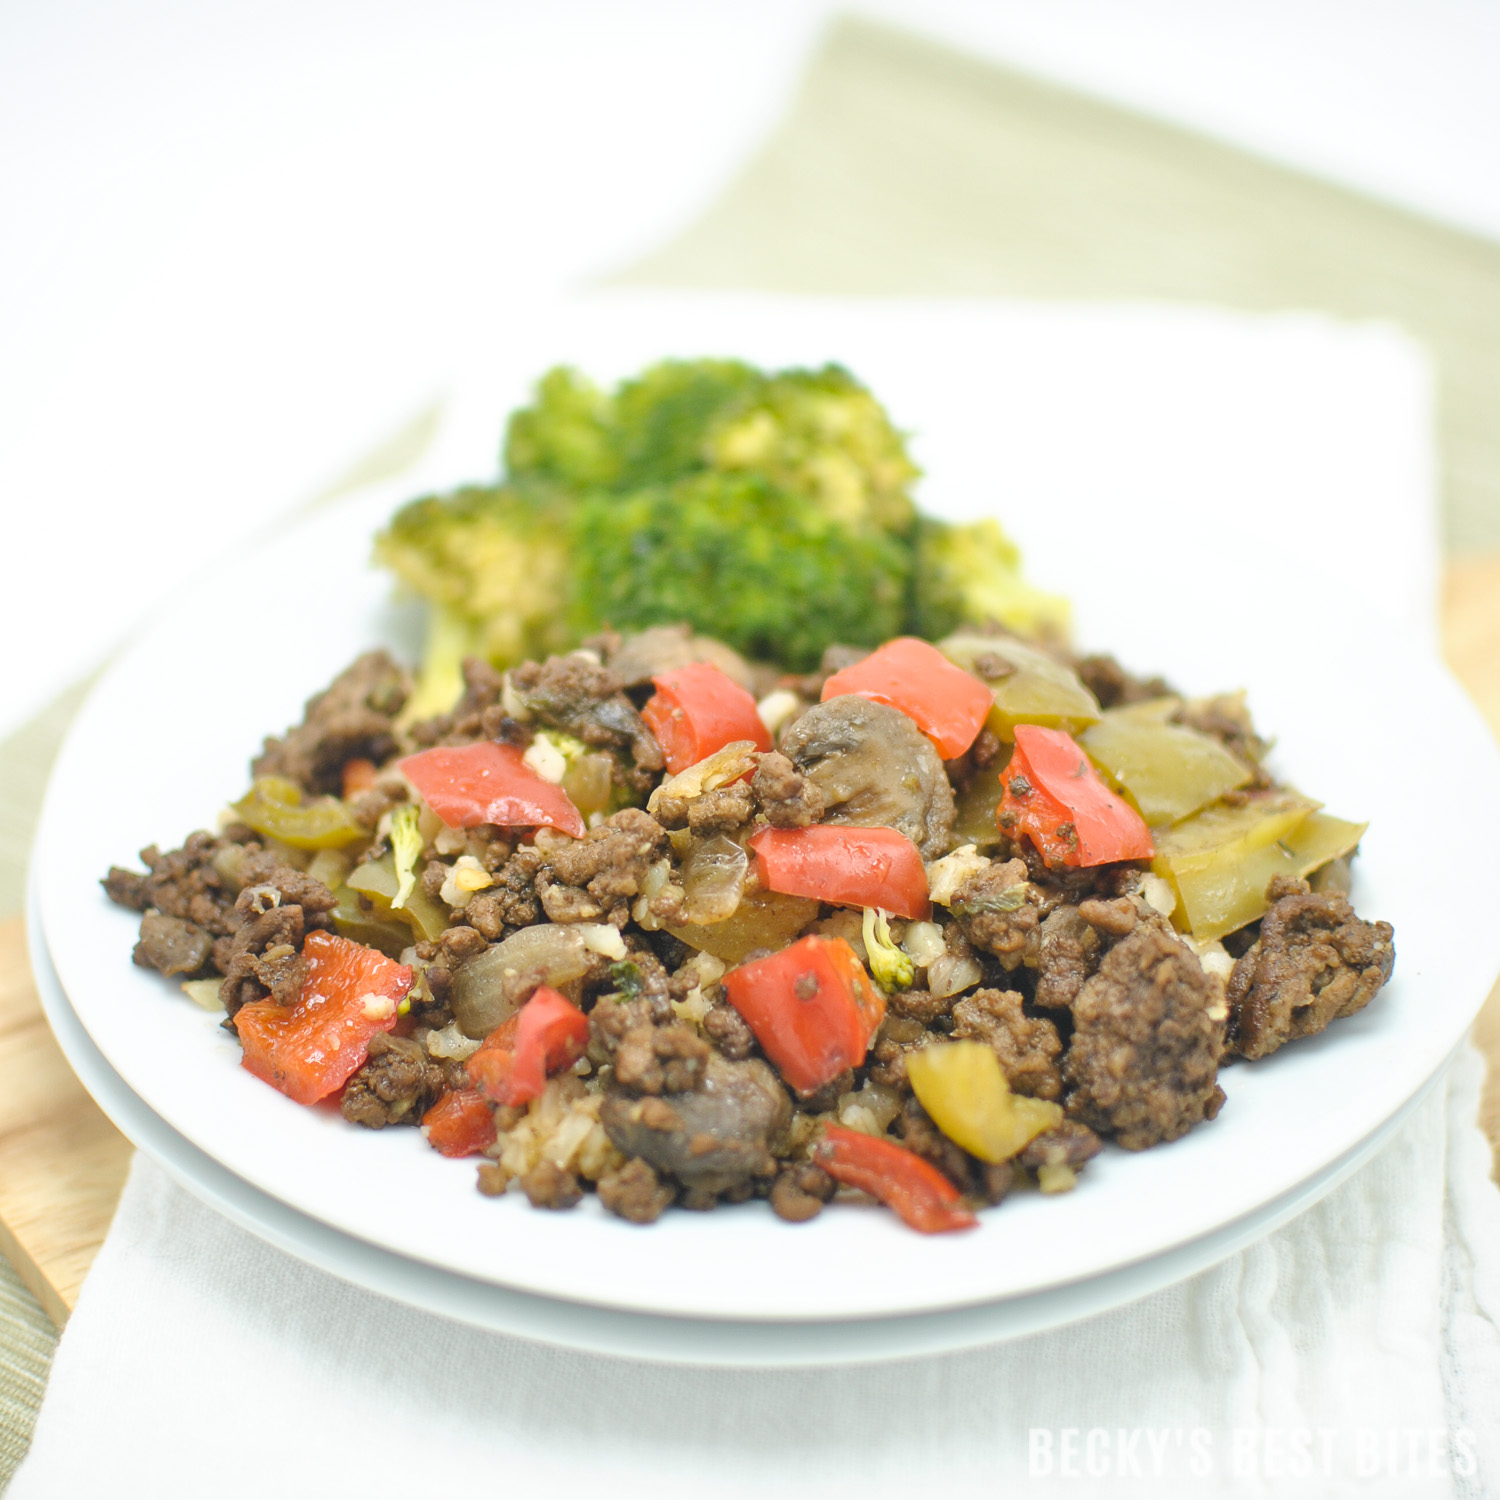 Bell Pepper Mushroom And Ground Beef Skillet Recipe -Becky